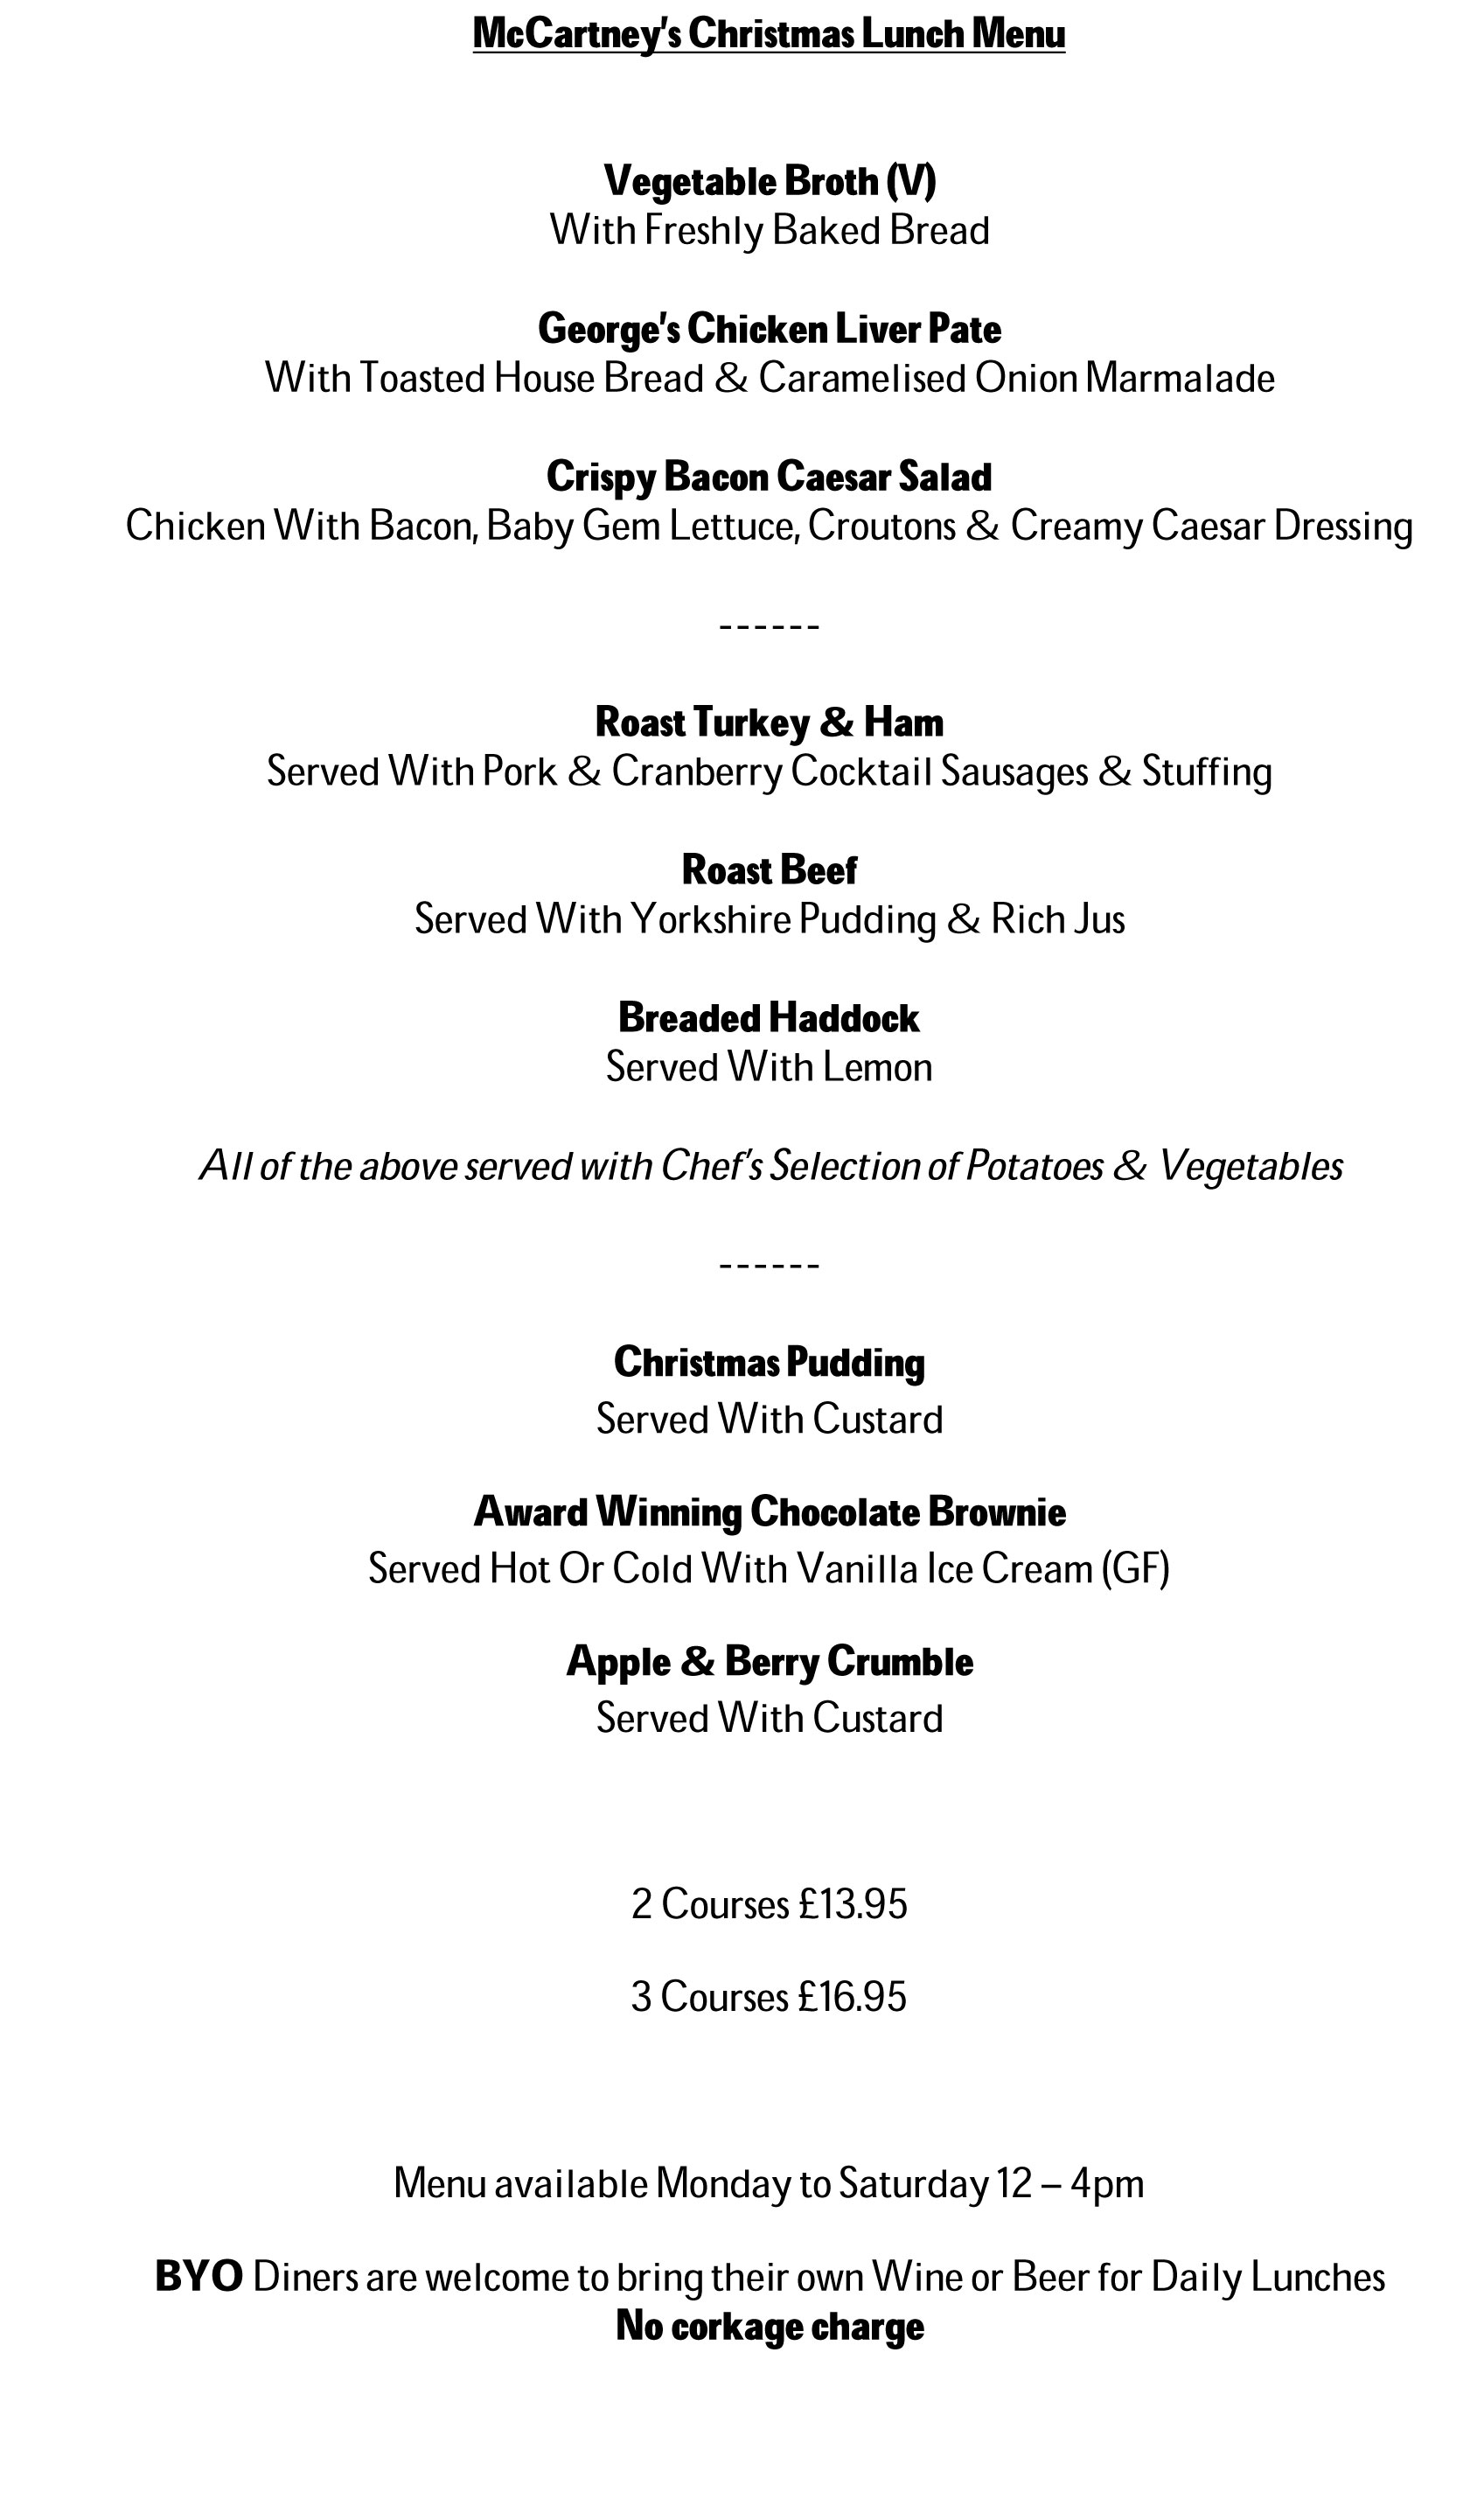 Christmas Lunch Menu at McCartney's